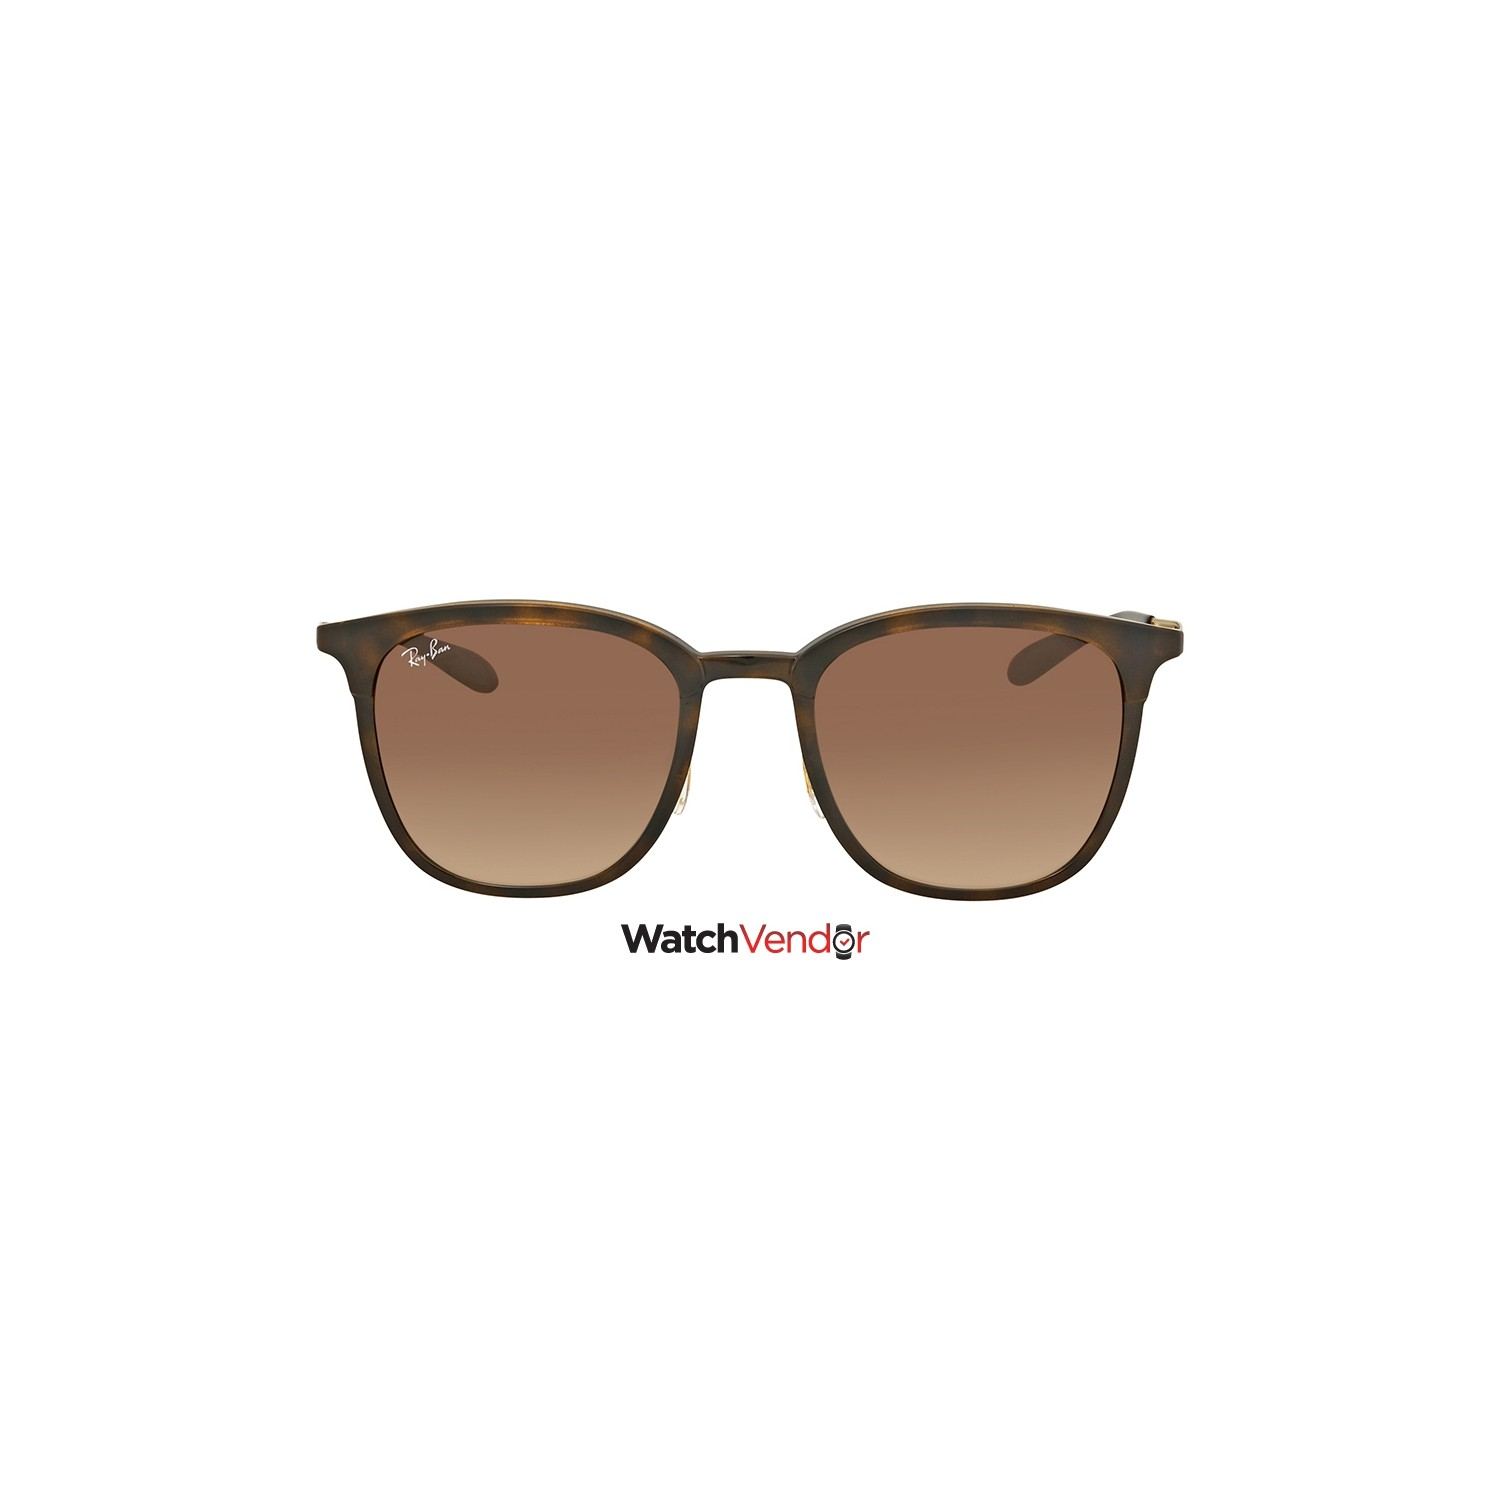 54de123564d Ray Ban Brown Gradient Square Sunglasses RB4278 628313 51   Sunglasses -  Best Buy Canada